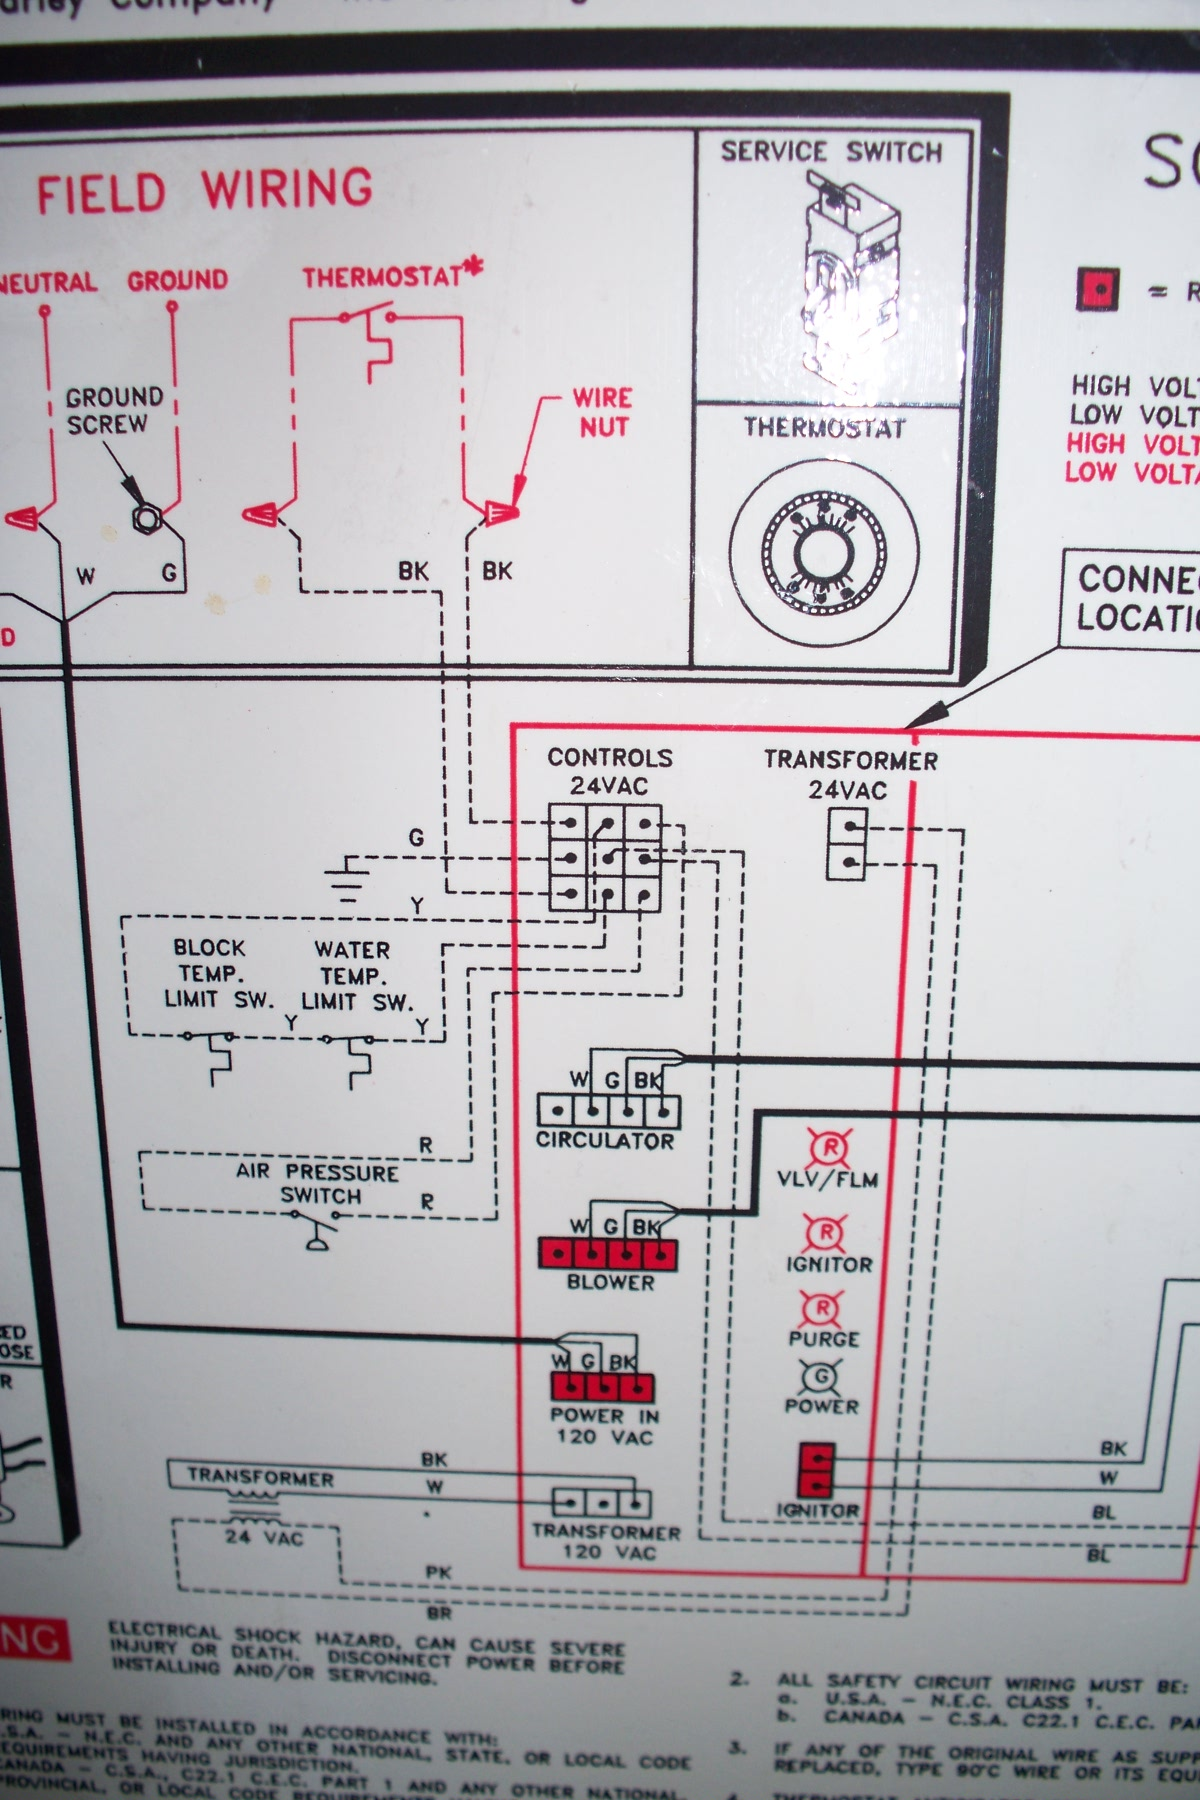 2014 01 12_010619_100_3141 i have a weil mcclain gv5 series 2 boiler with an amtrol amtrol boilermate wiring diagram at edmiracle.co